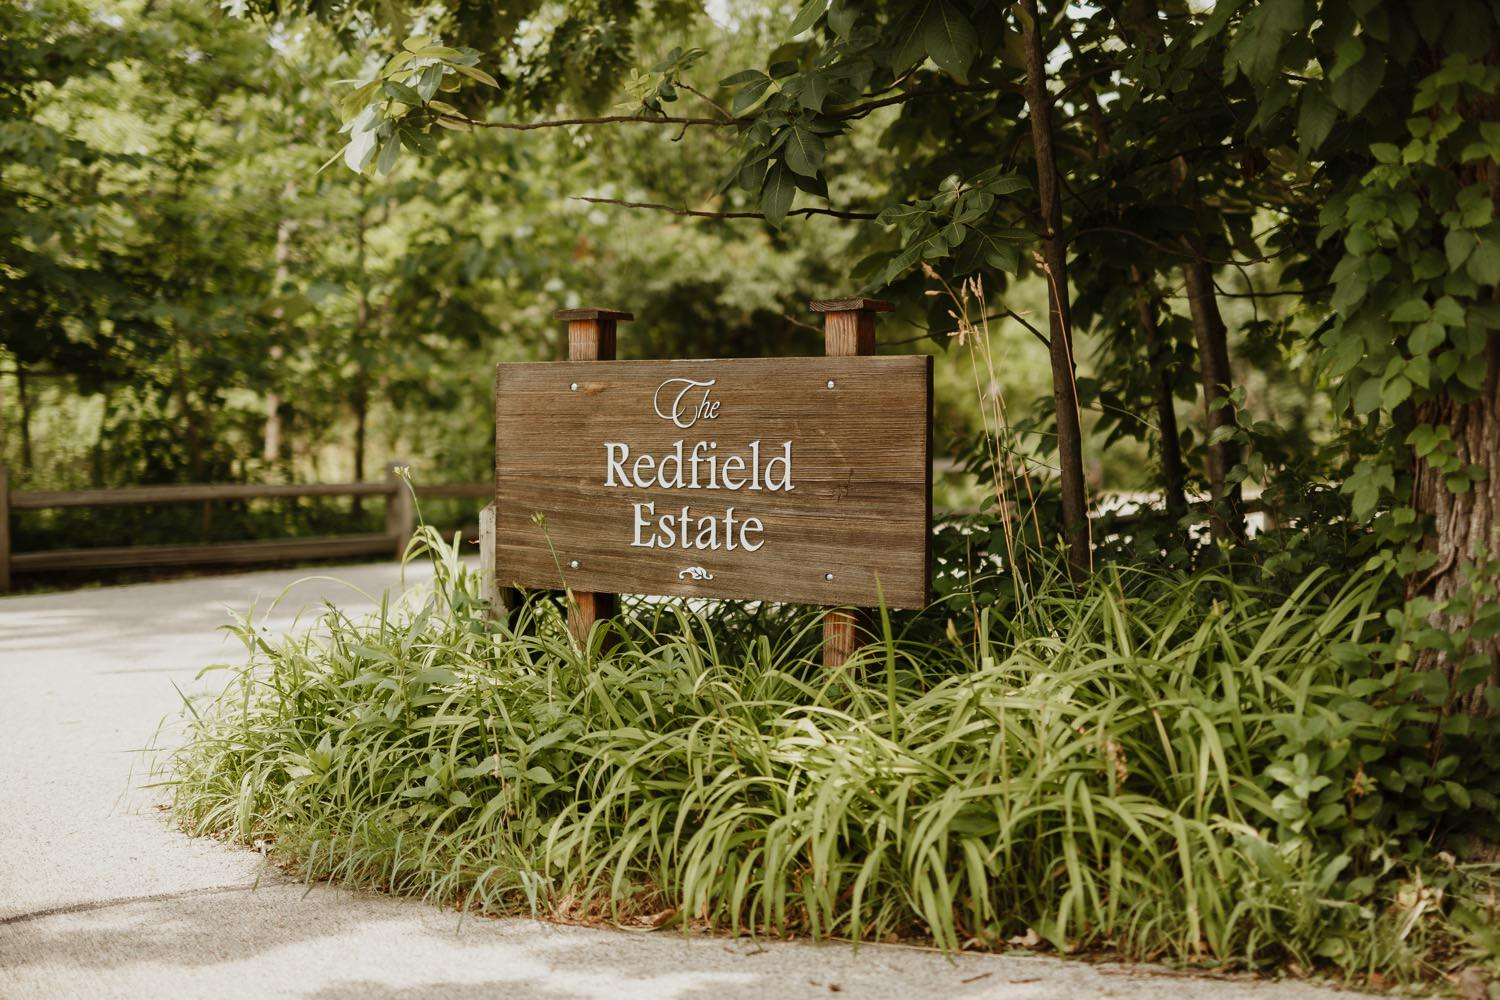 the sign at the entrance of the redfield estate